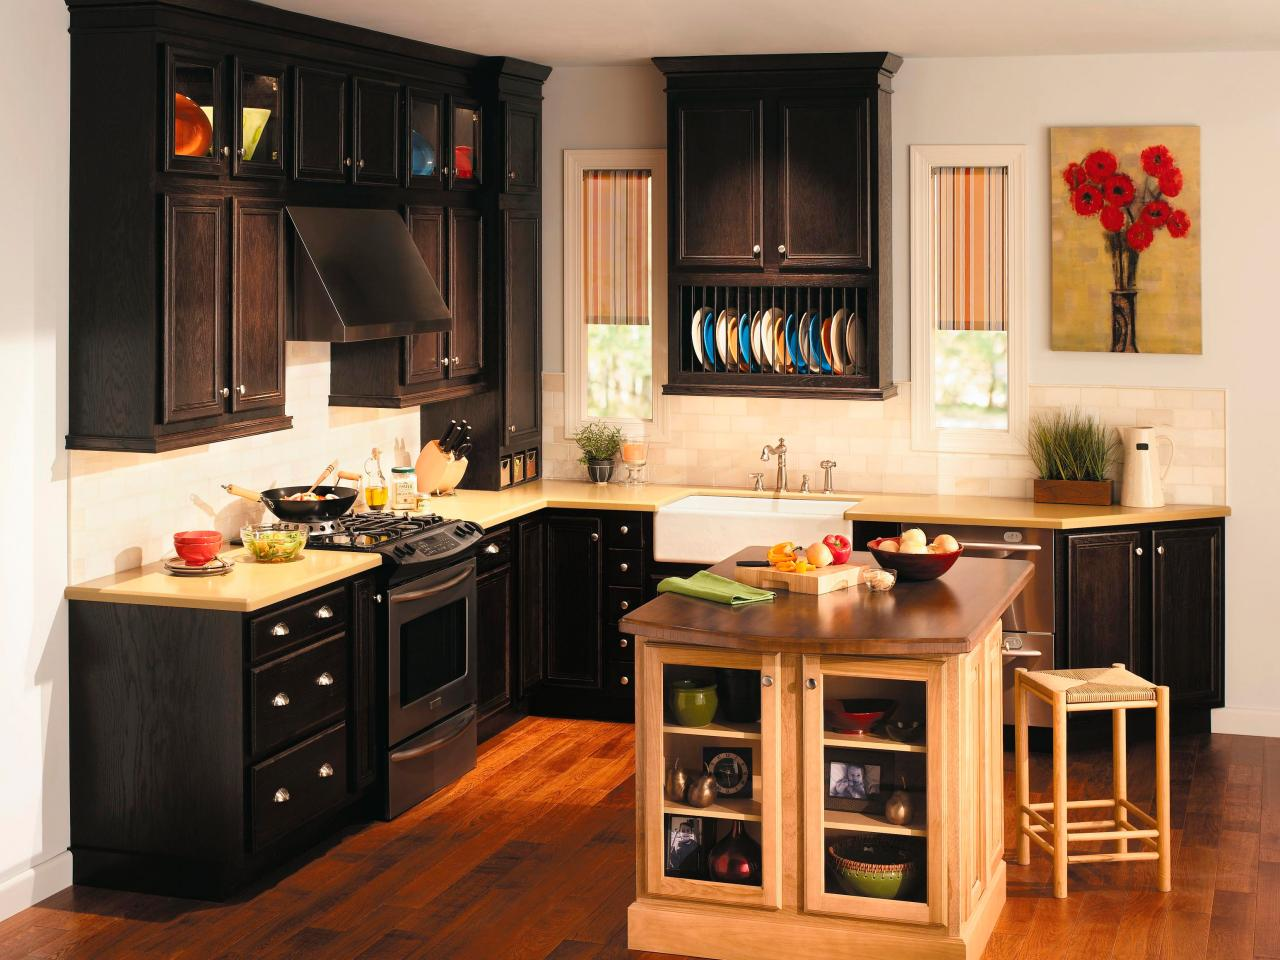 Best Small Kitchen Designs wood kitchen cabinets: pictures, options, tips & ideas | hgtv